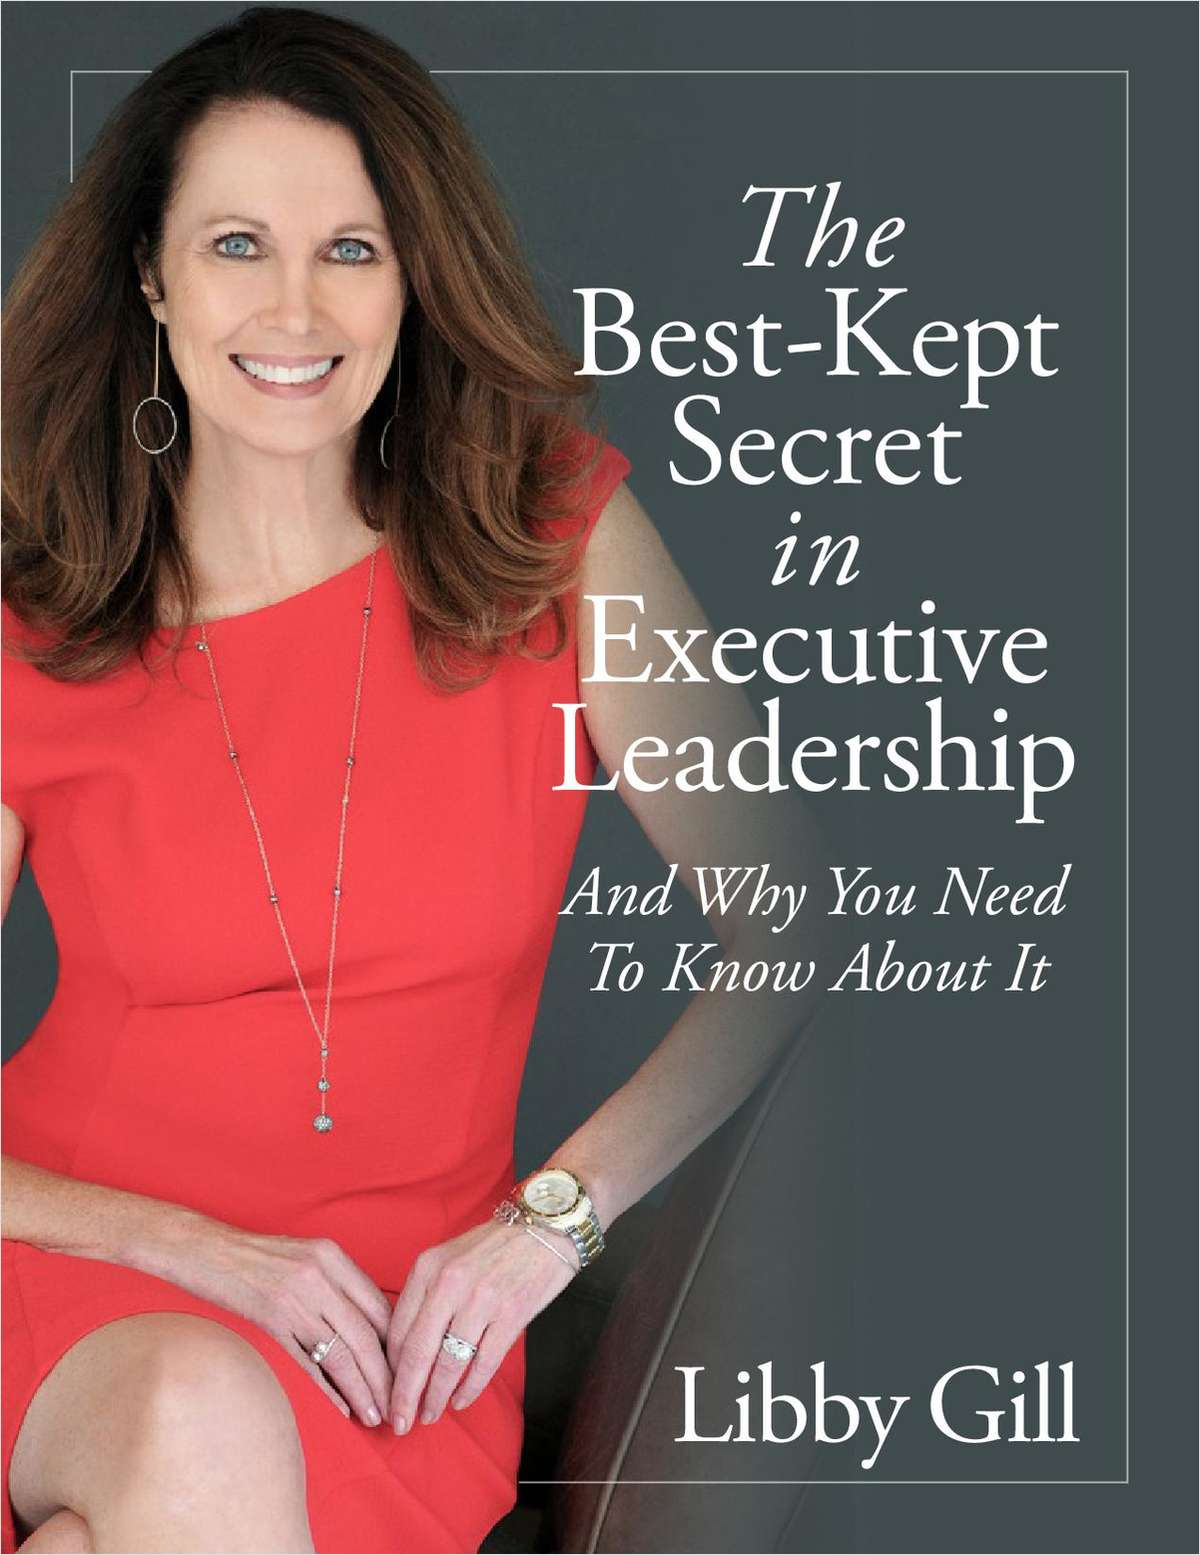 The Best-Kept Secret in Executive Leadership And Why You Need To Know About It